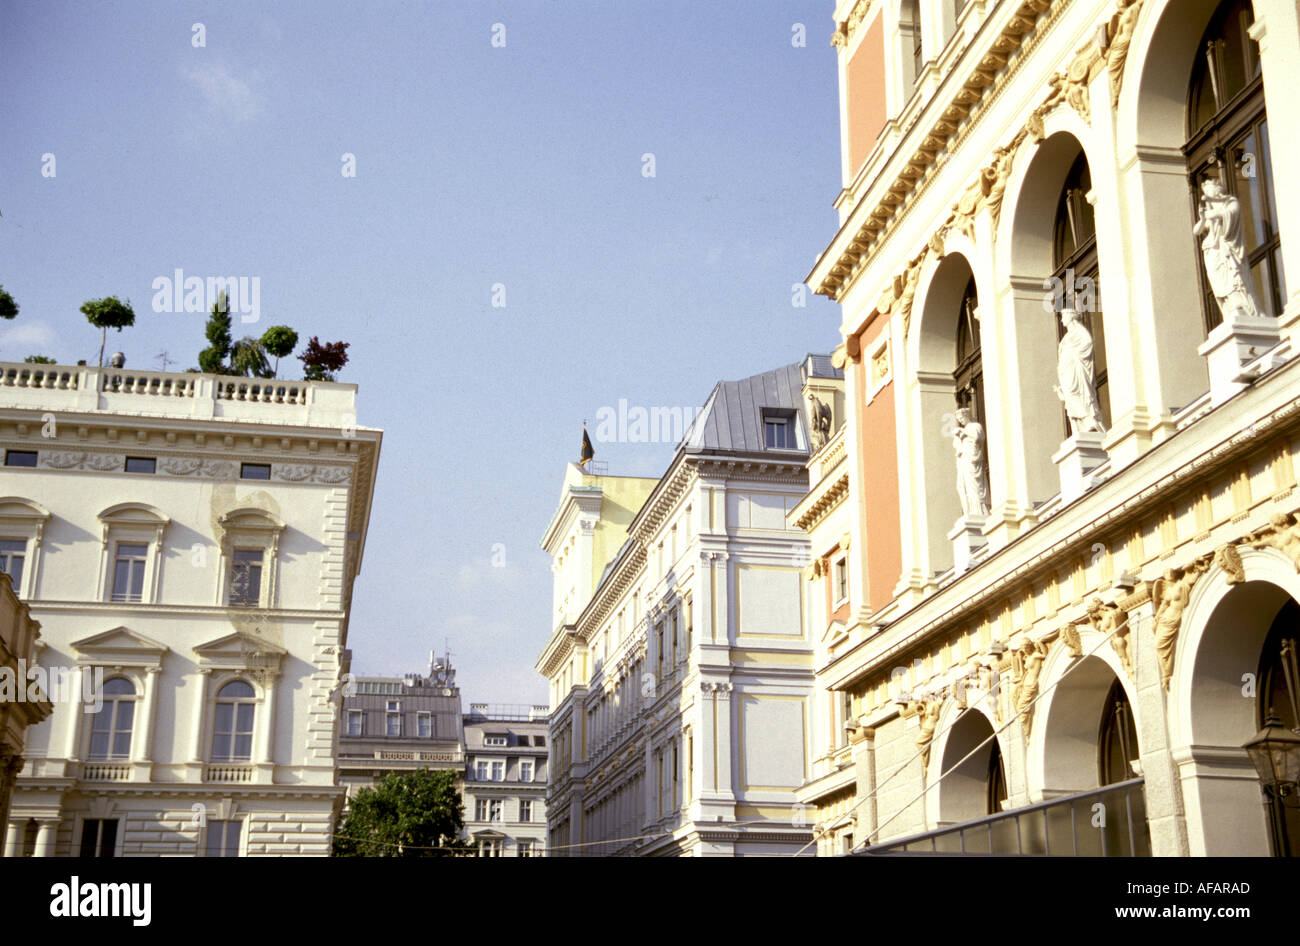 Travel photography from Vienna Wien Austria - Stock Image